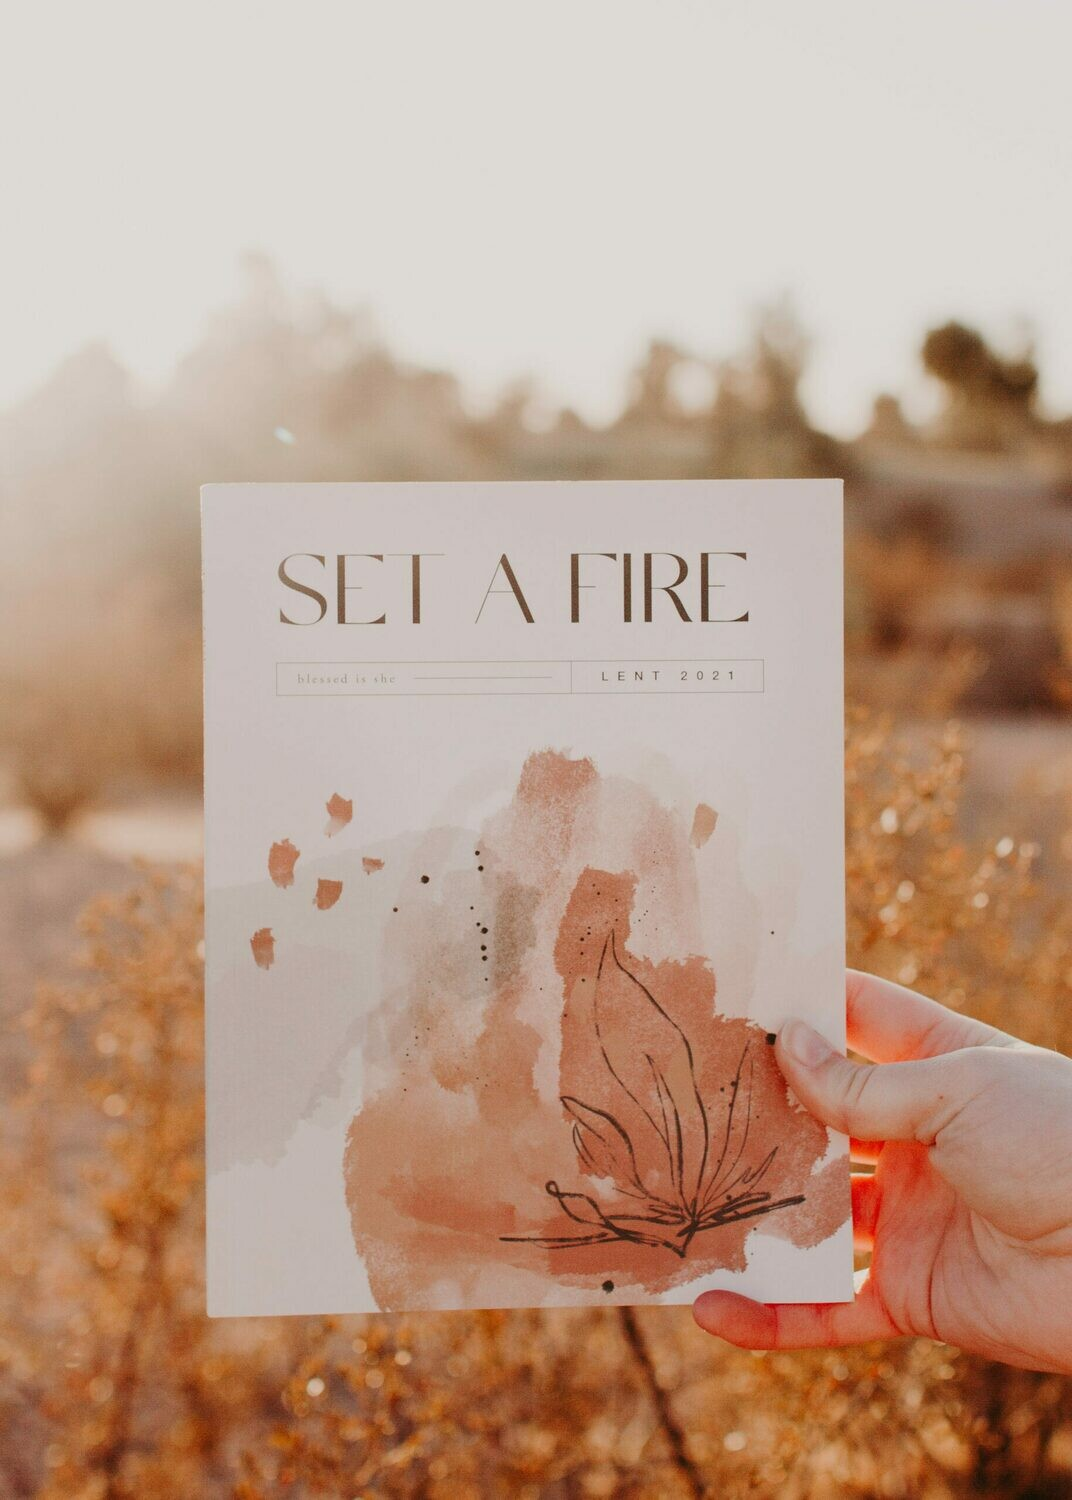 SET A FIRE THE CATHOLIC LENT DEVOTIONAL FOR WOMEN